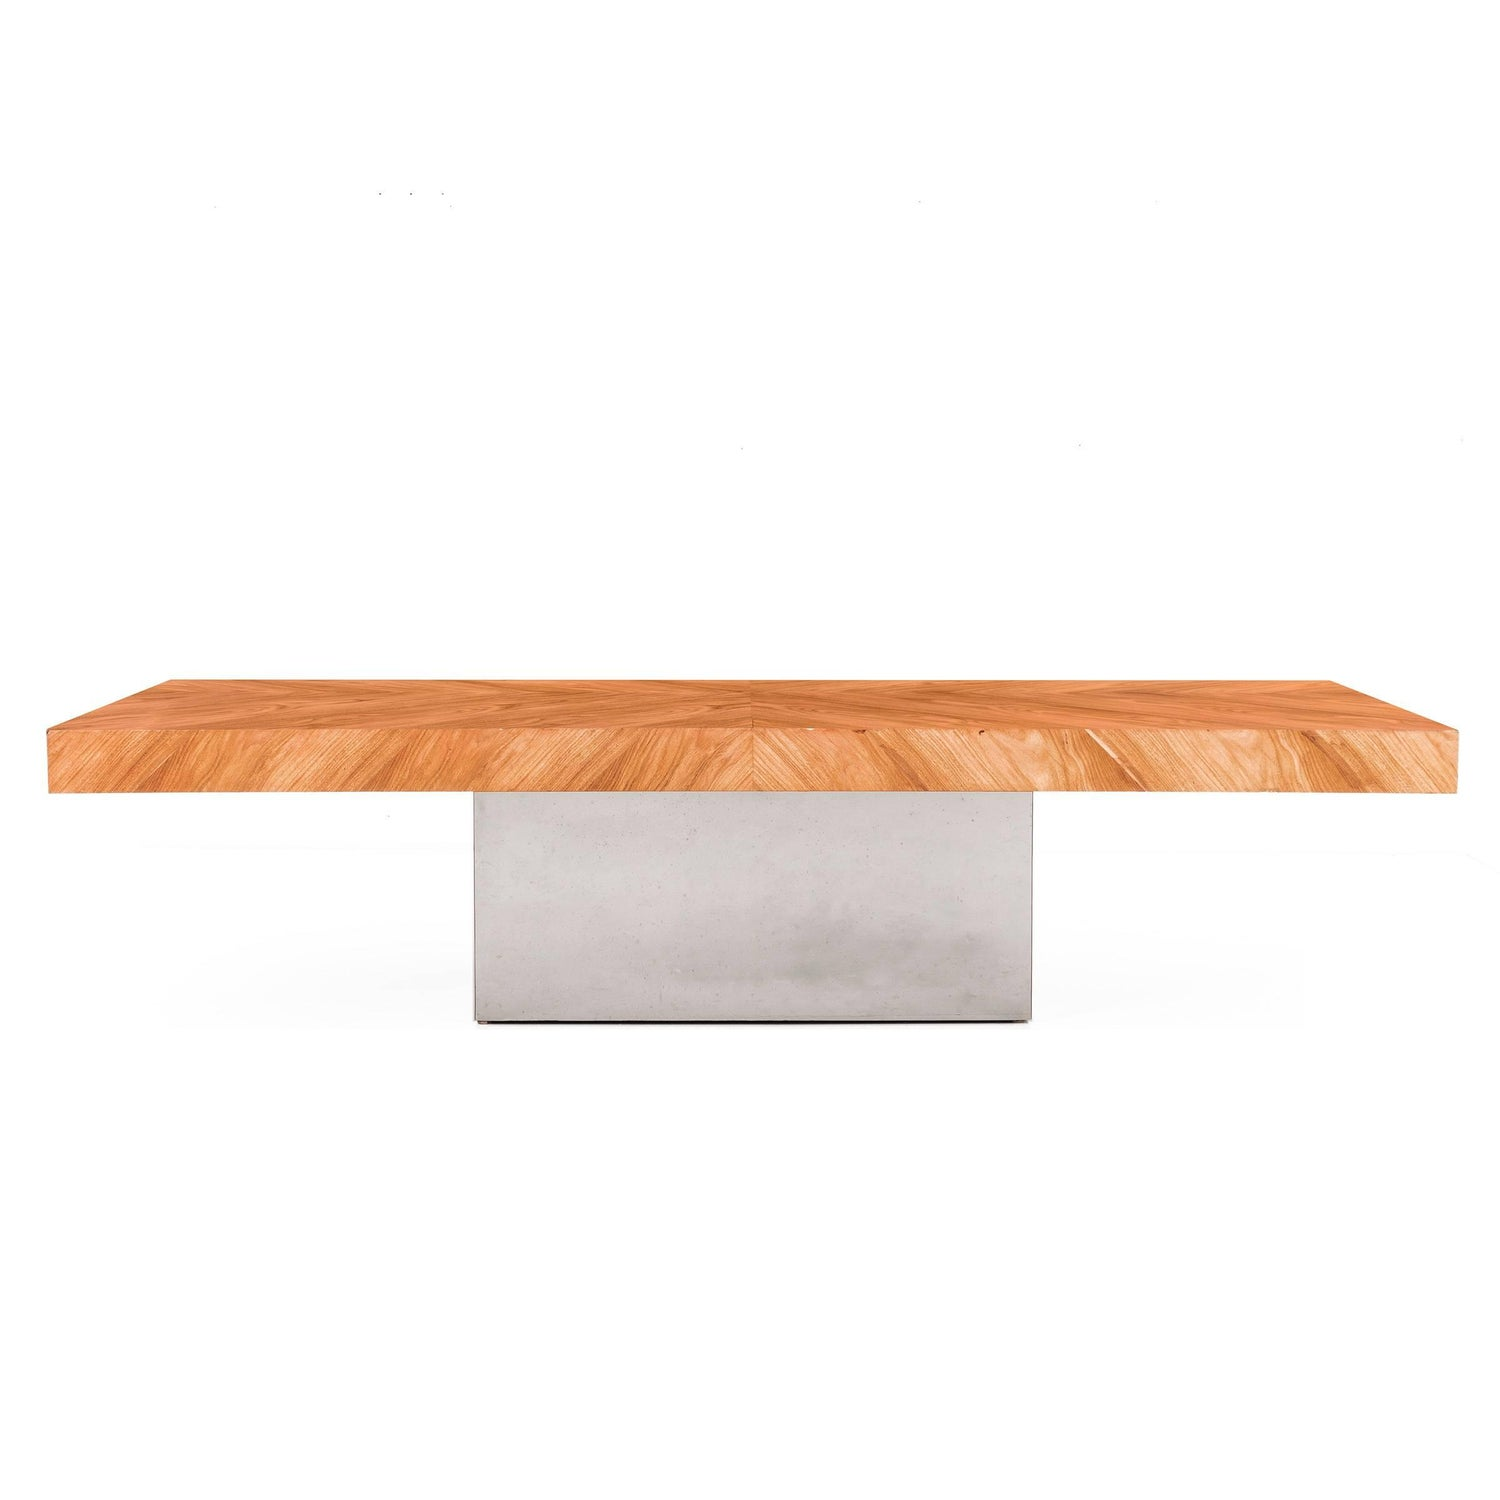 Milo Baughman Coffee Table For Sale at 1stdibs